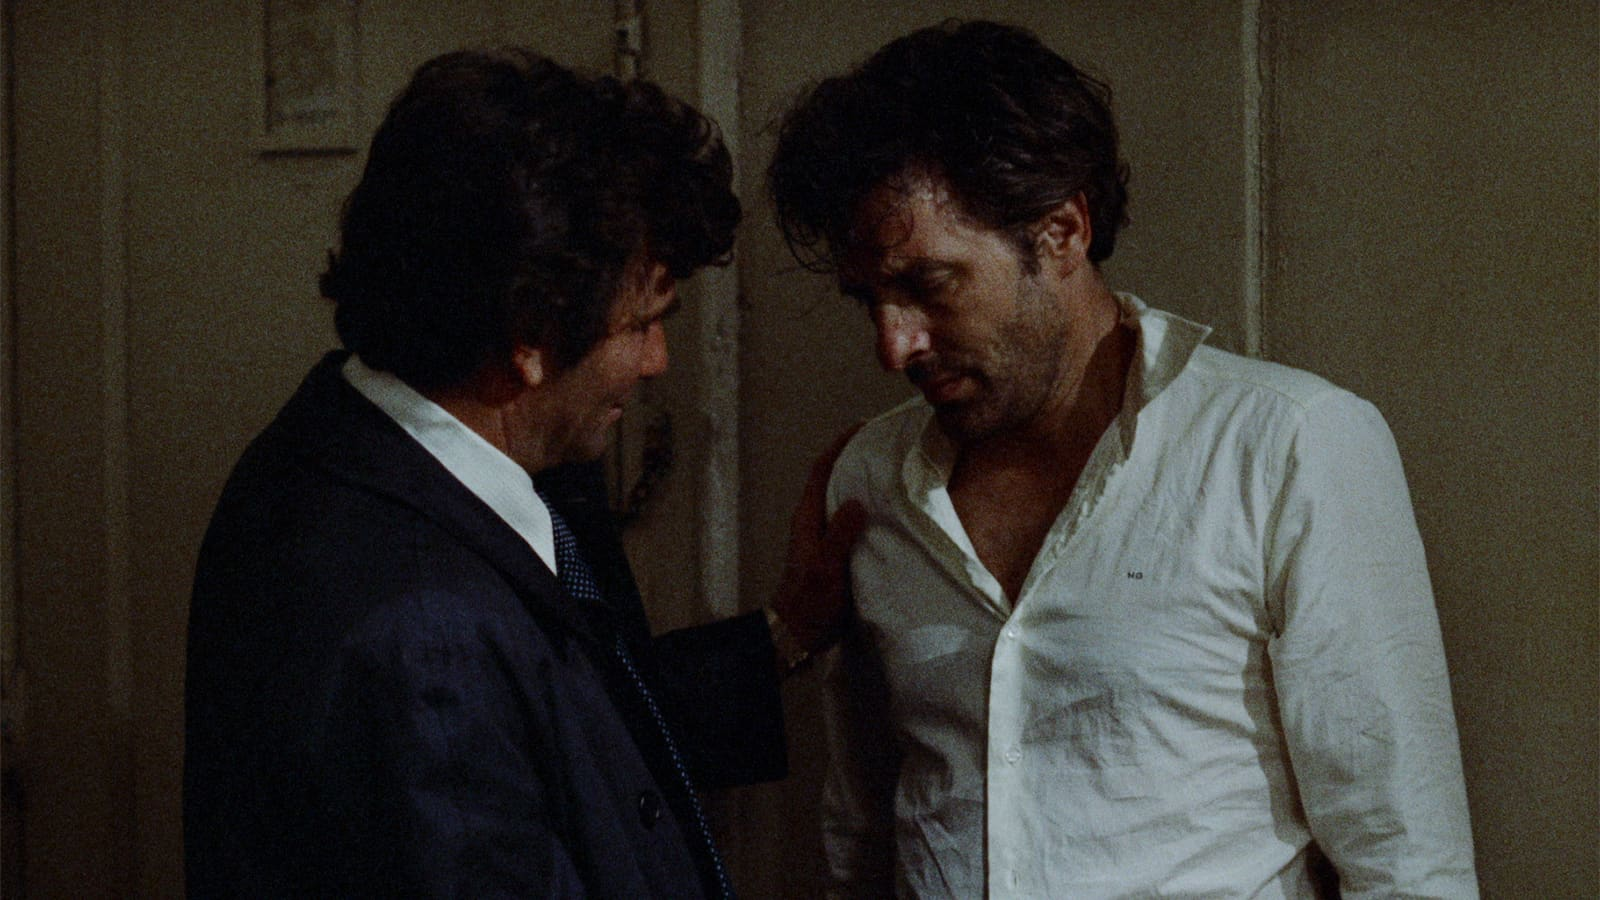 Elaine May's <i>Mikey and Nicky</i> (1976): Criterion Blu-ray review